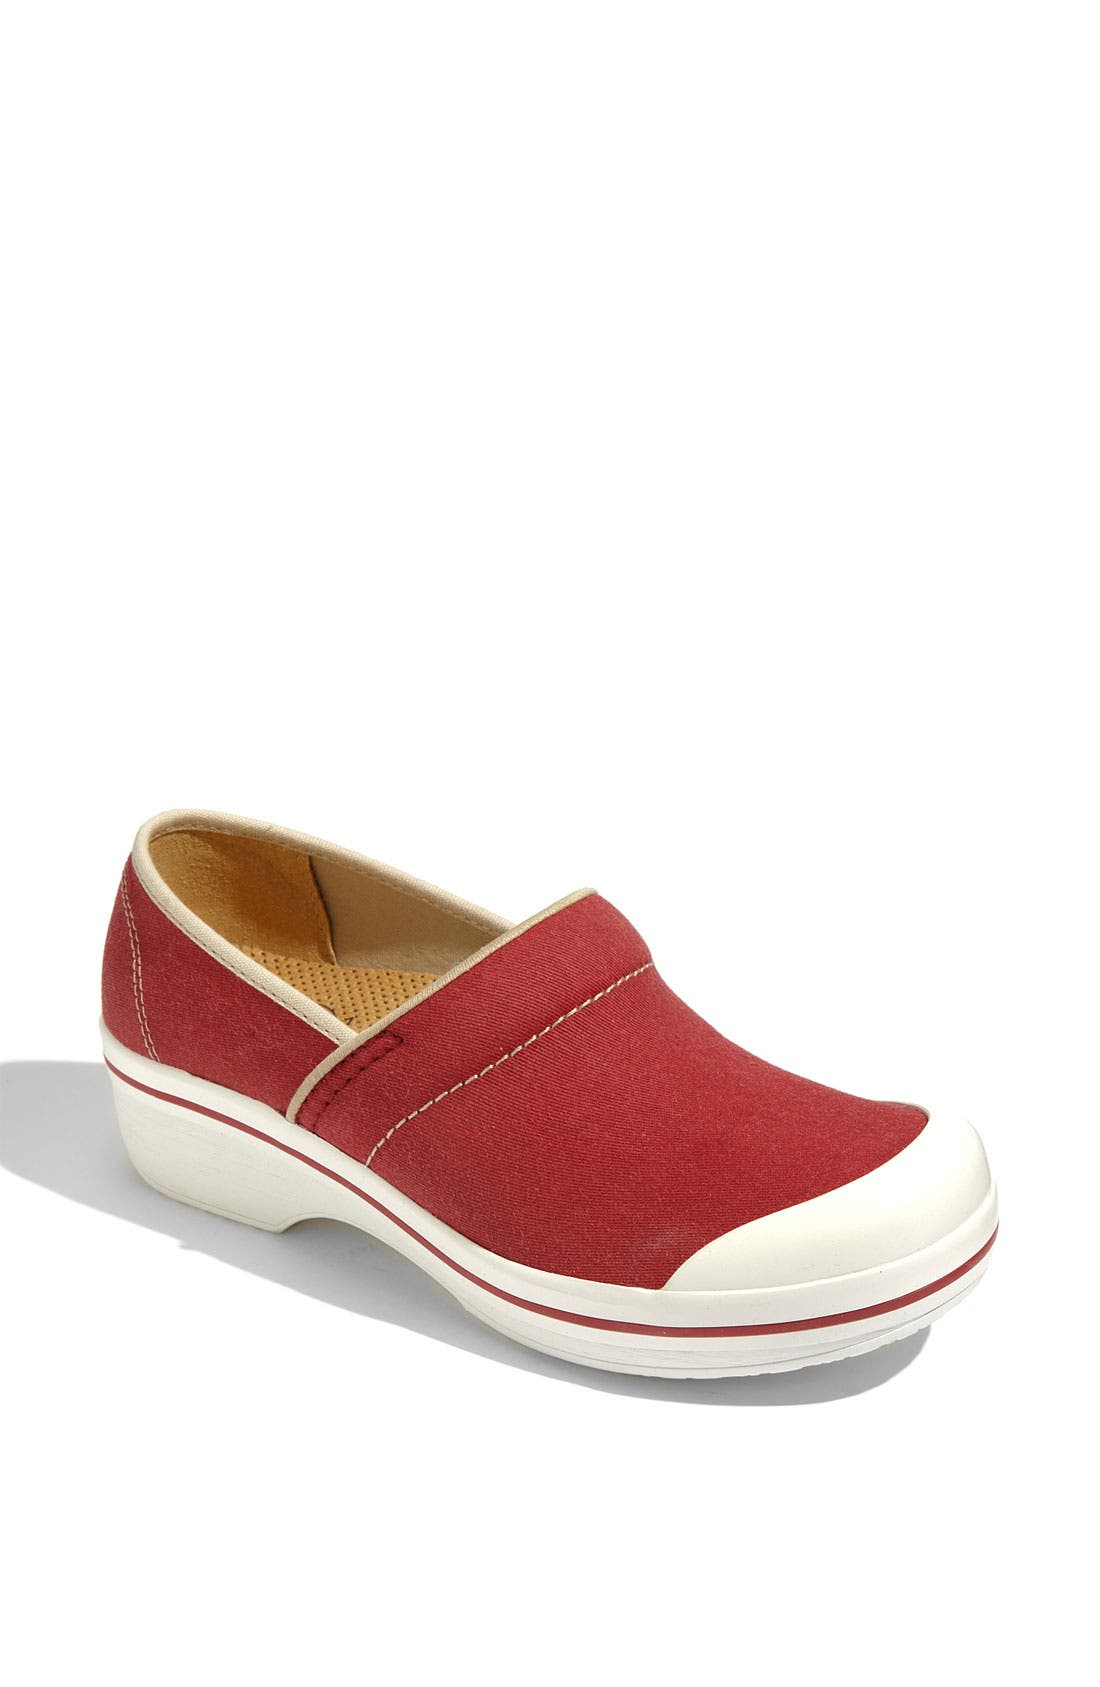 Alternate Image 1 Selected - Dansko 'Volley' Canvas Clog